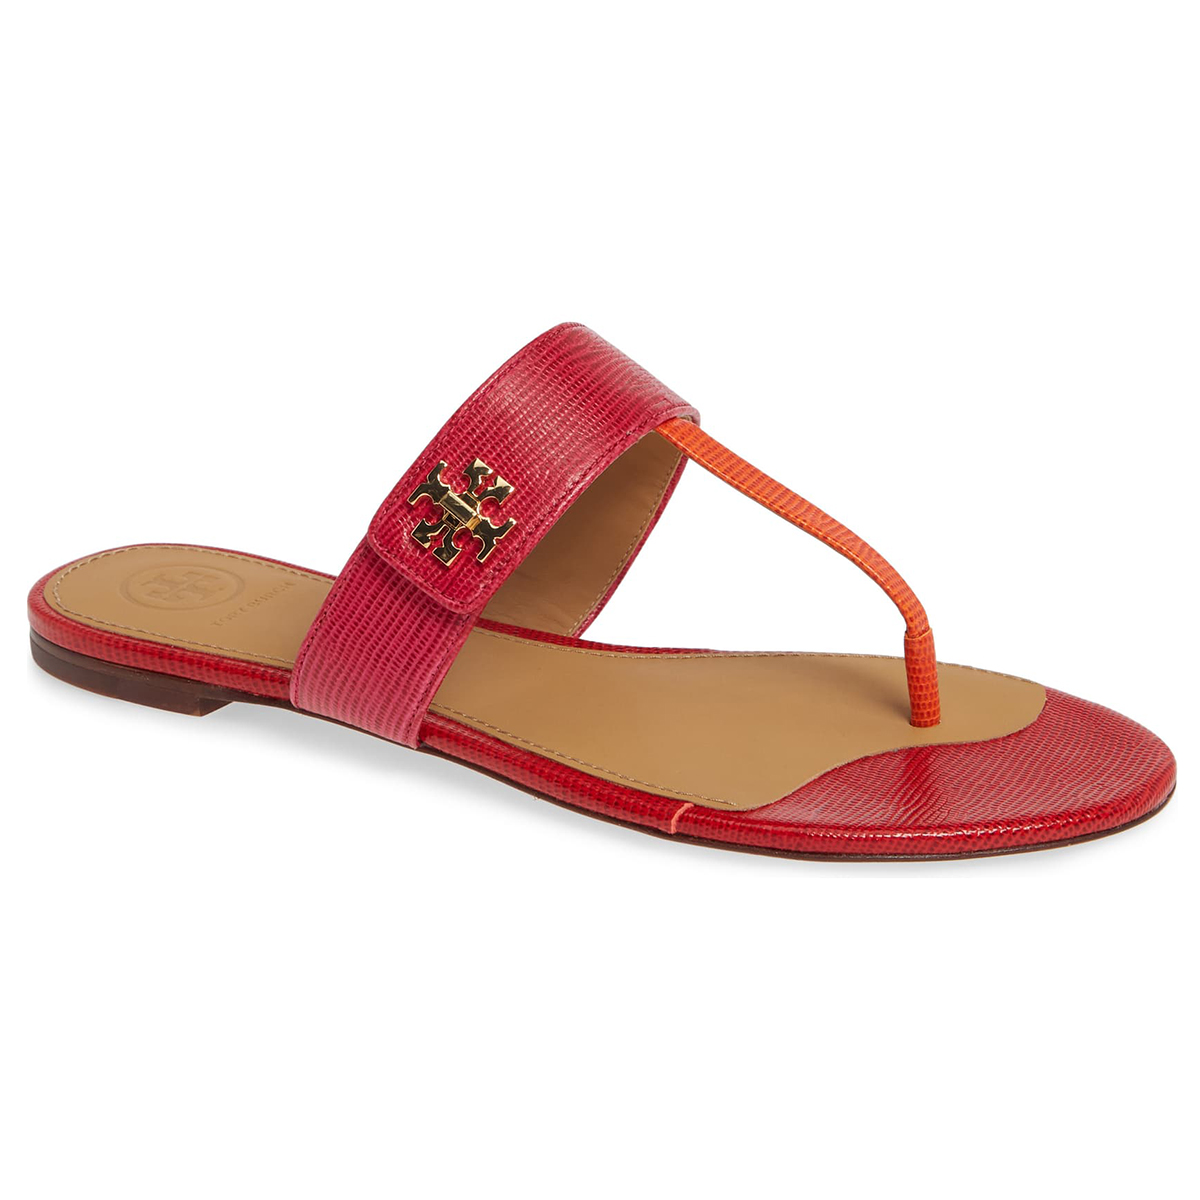 Tory Burch Shoes Red